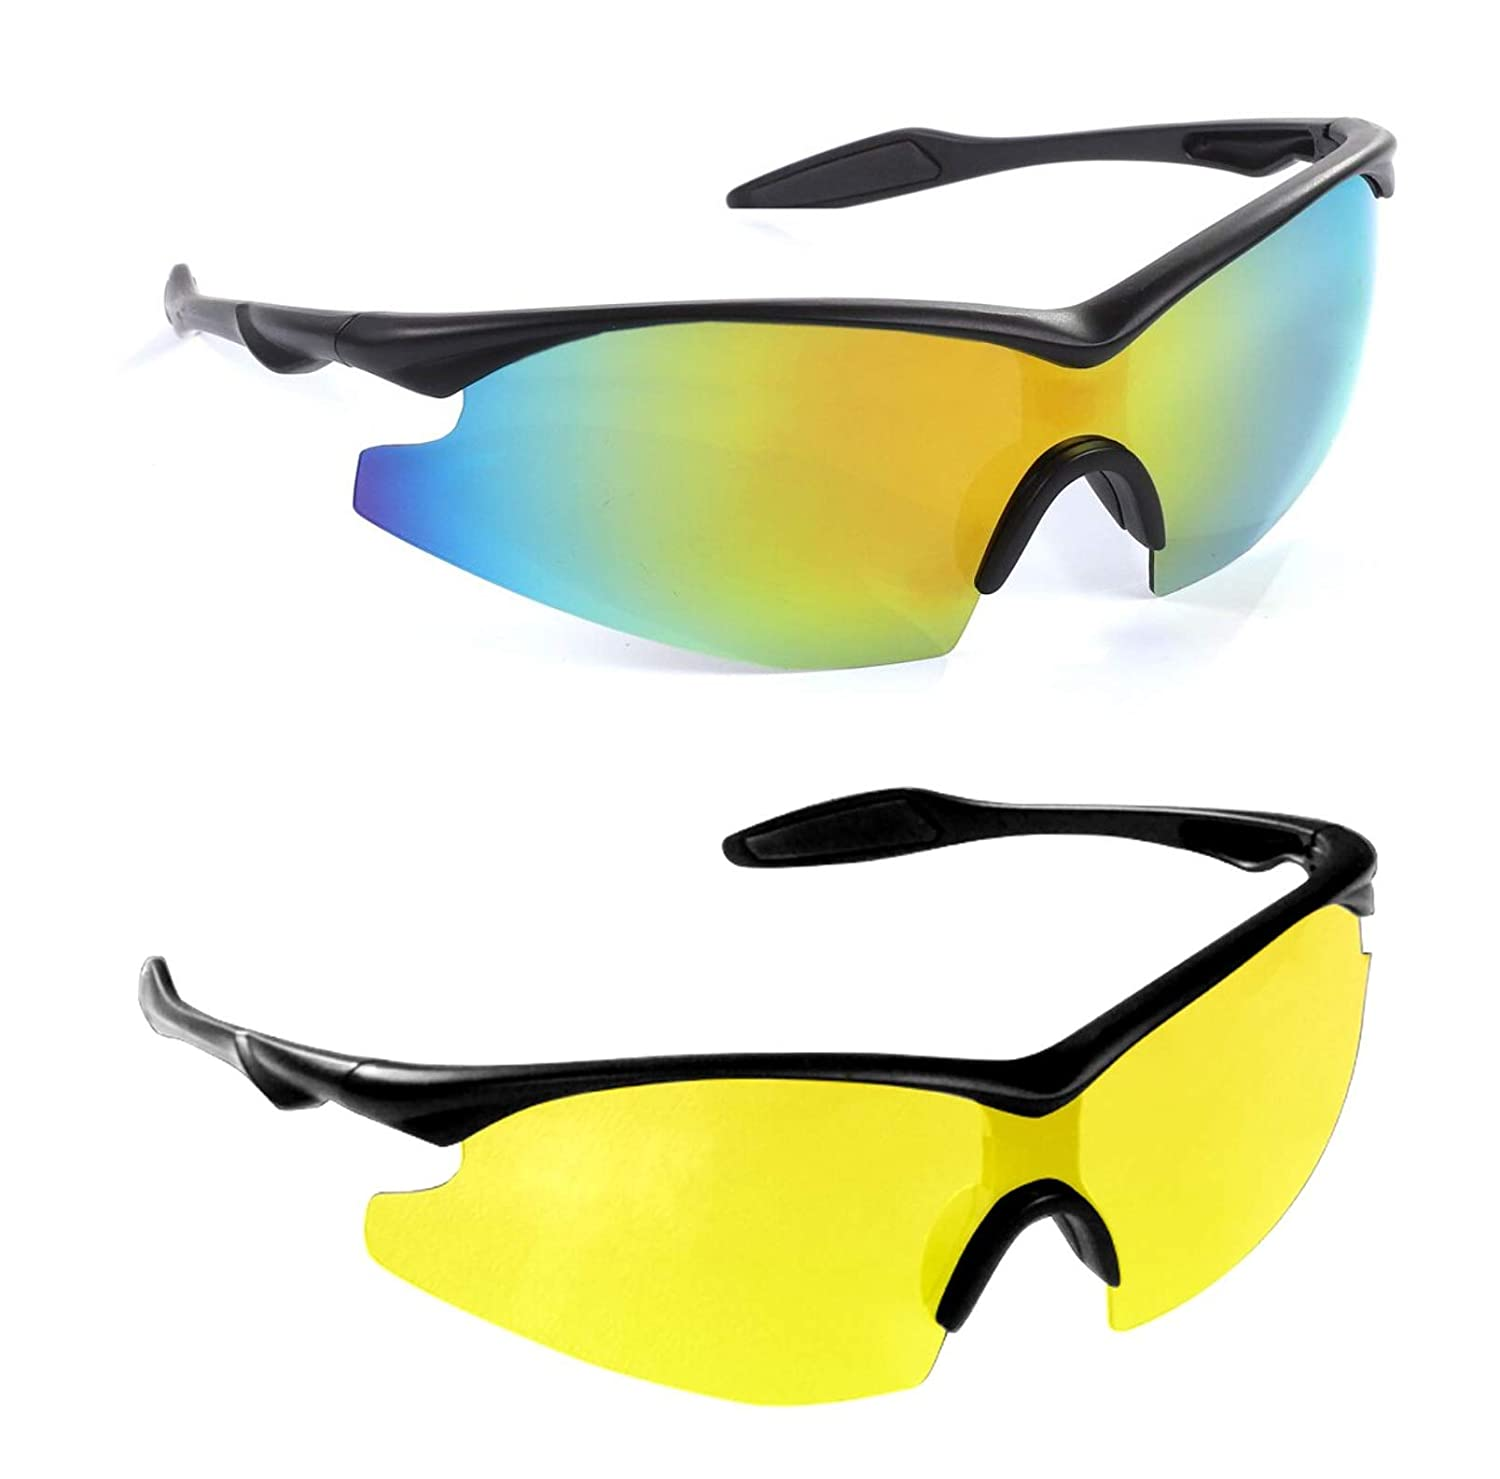 3f22f52d7d Amazon.com  Bell + Howell Tac Glasses + Nightvision Sun Glasses Polarized